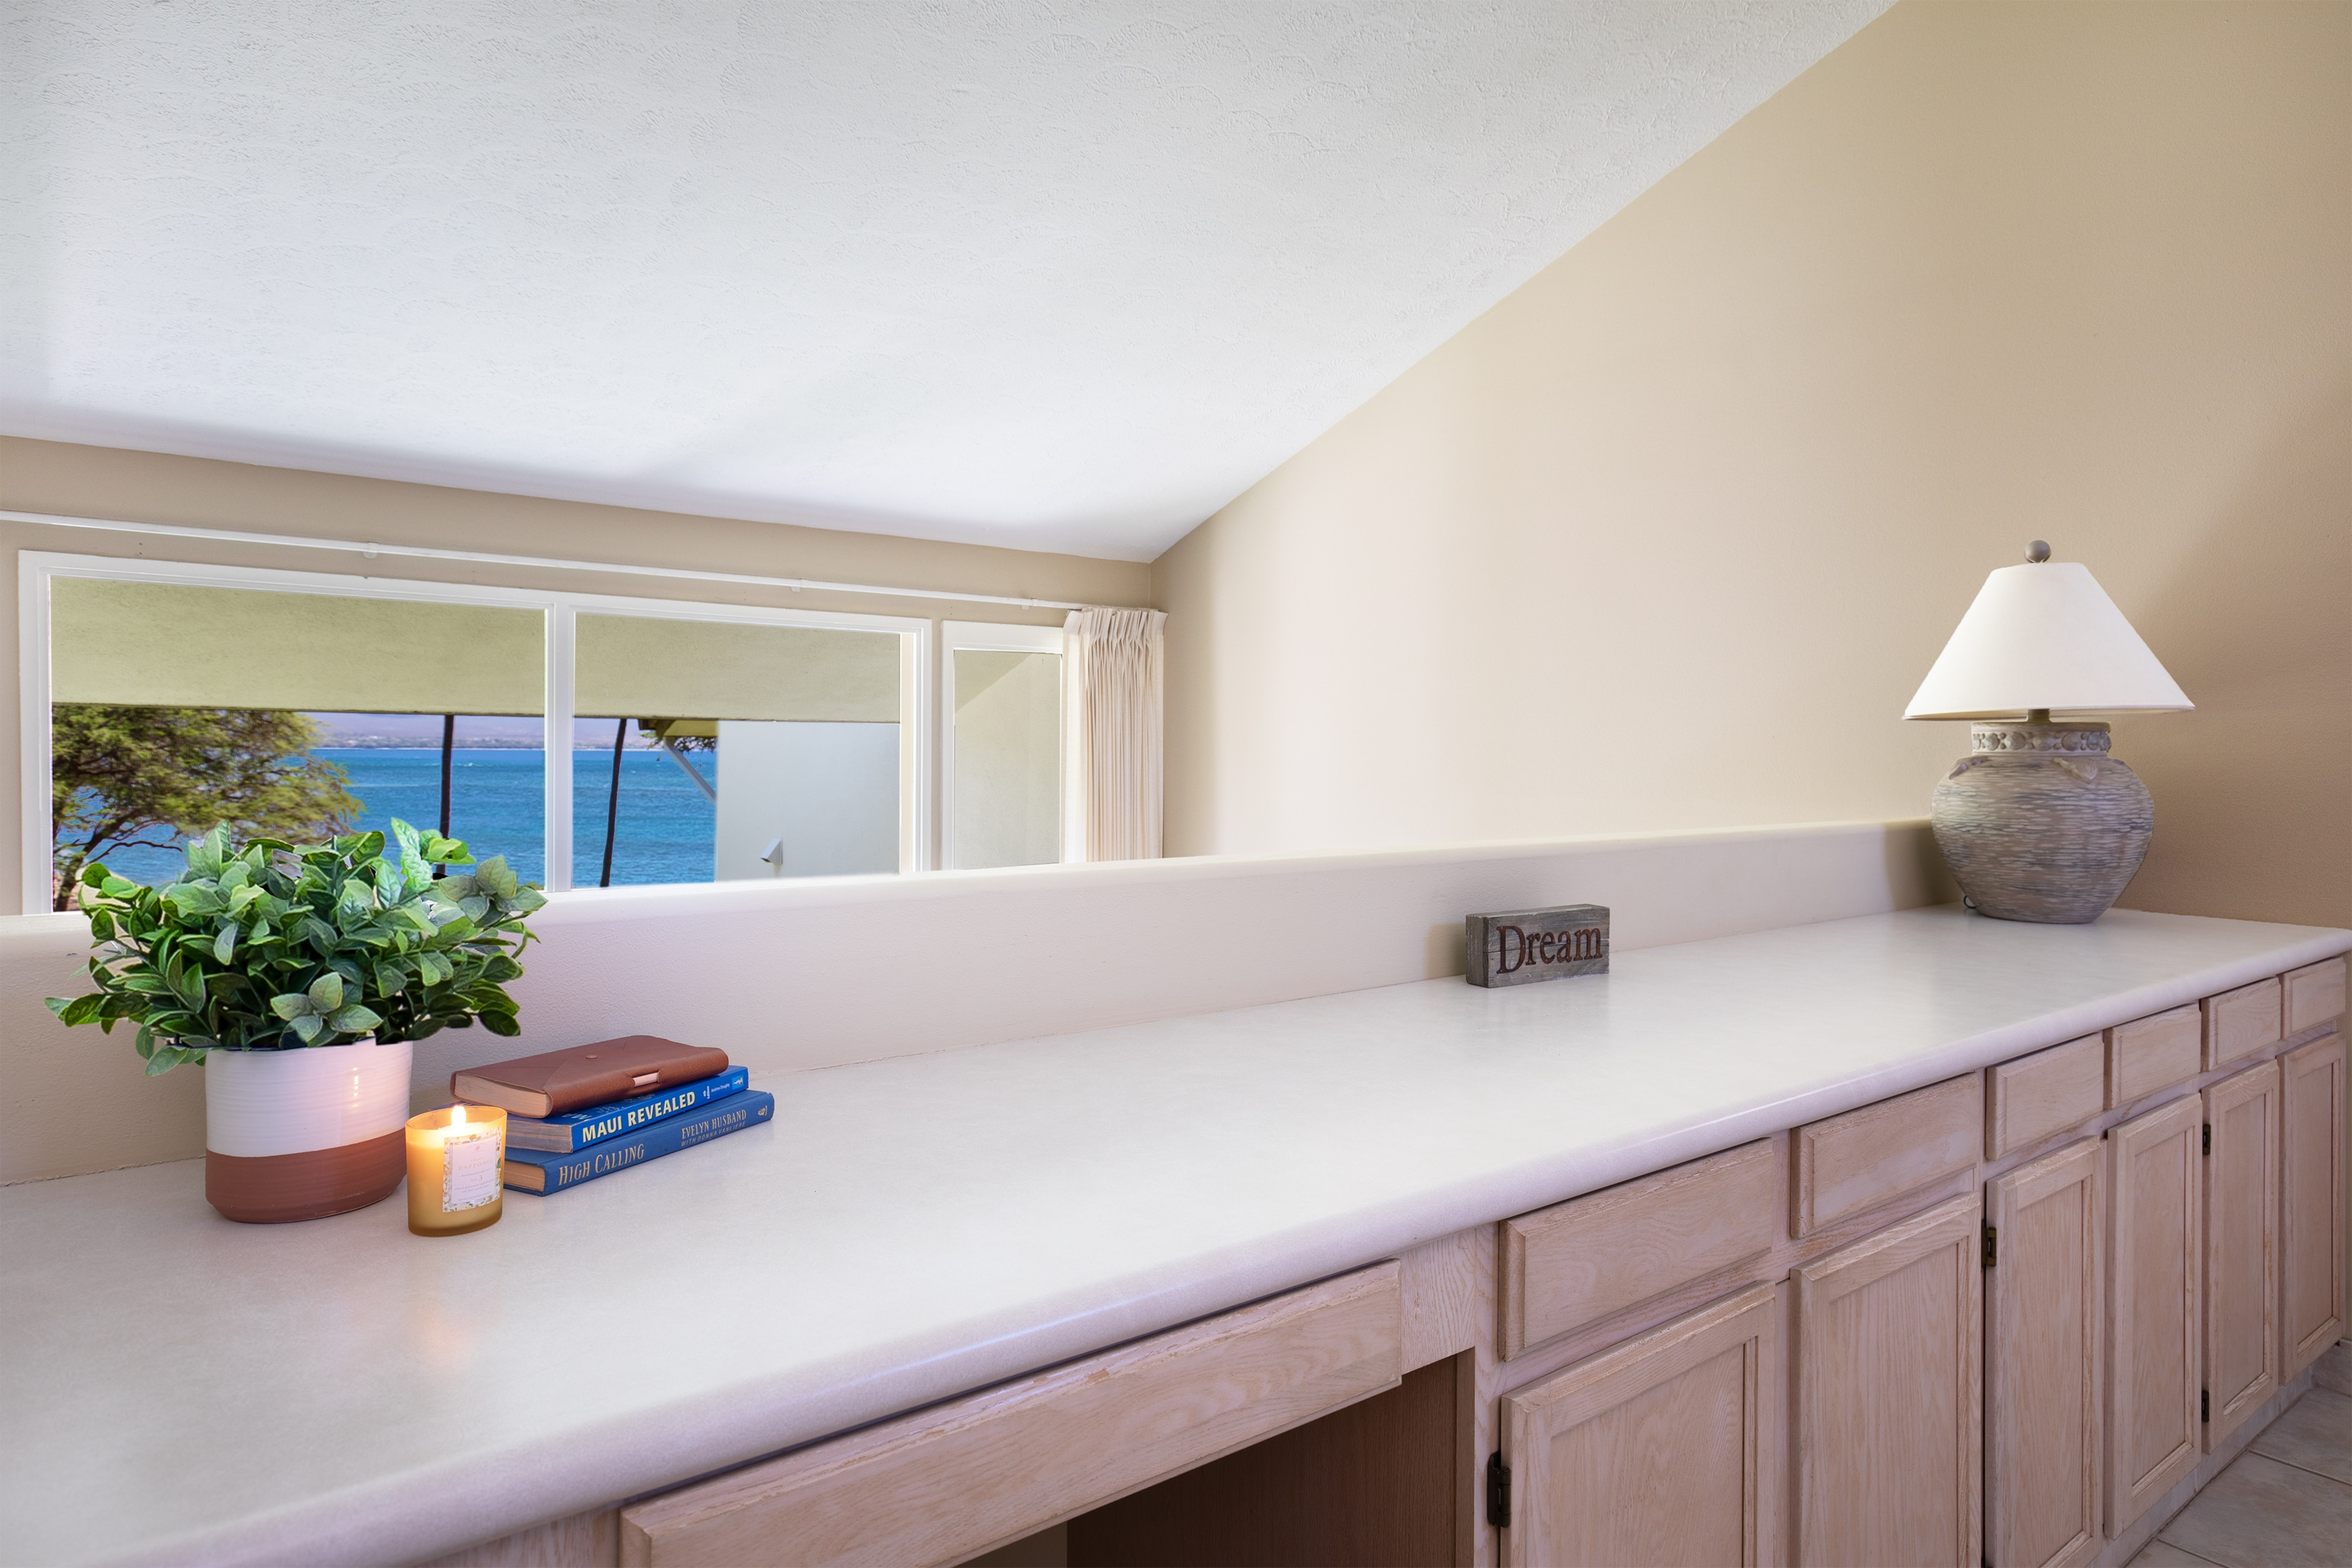 Property Image 2 - Remarkable Maui Getaway with Modern Beach Inspired Decor *Makani A Kai B9